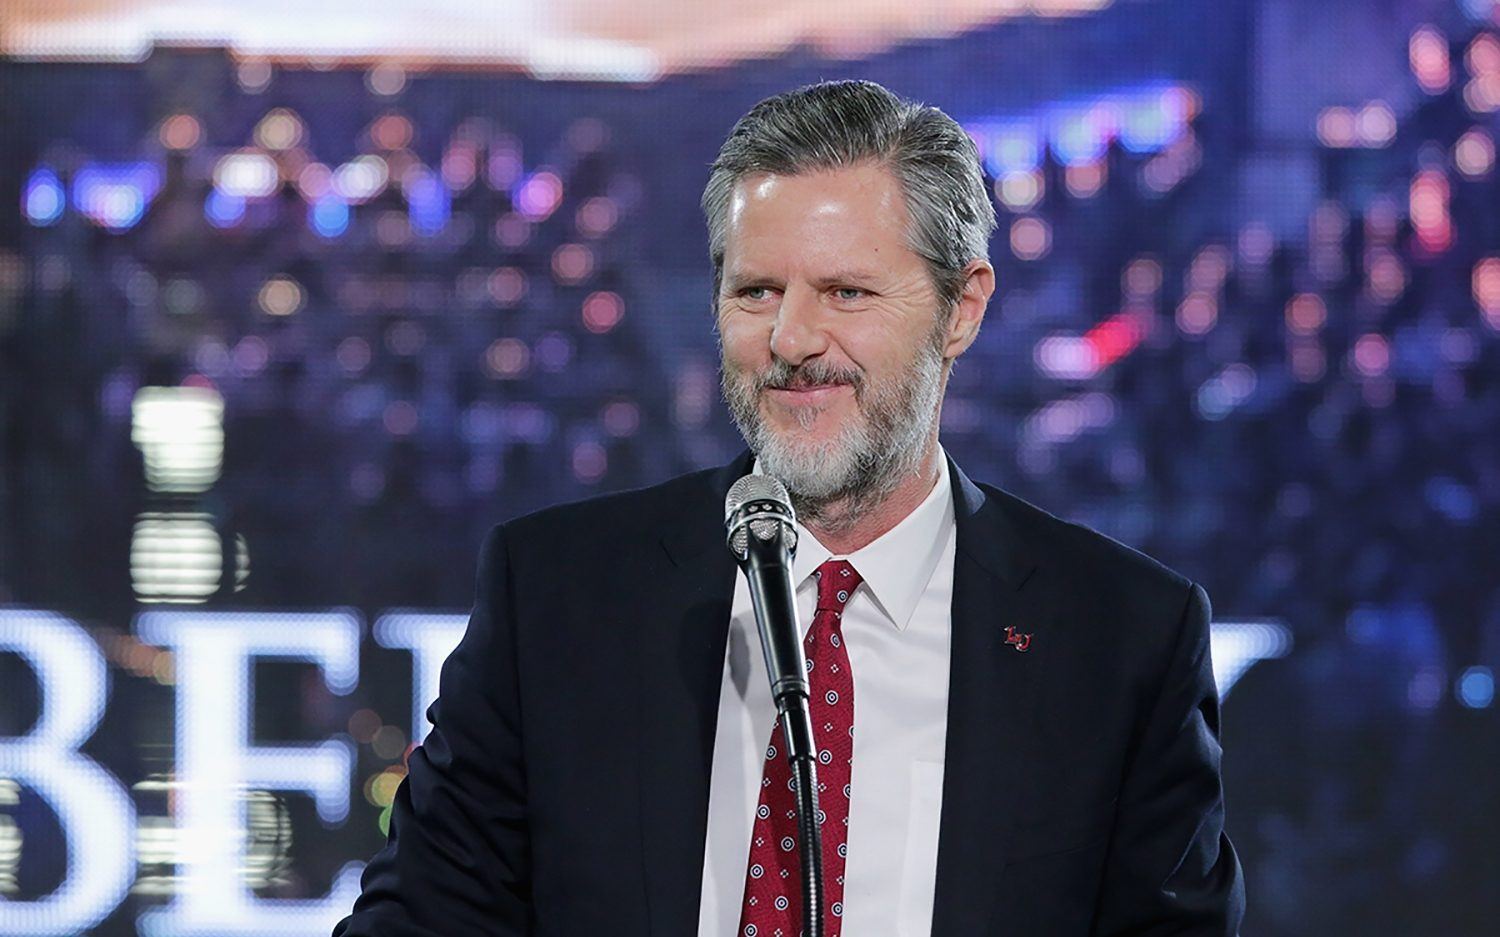 Liberty University accuses Falwell of conspiracy and breach of contract